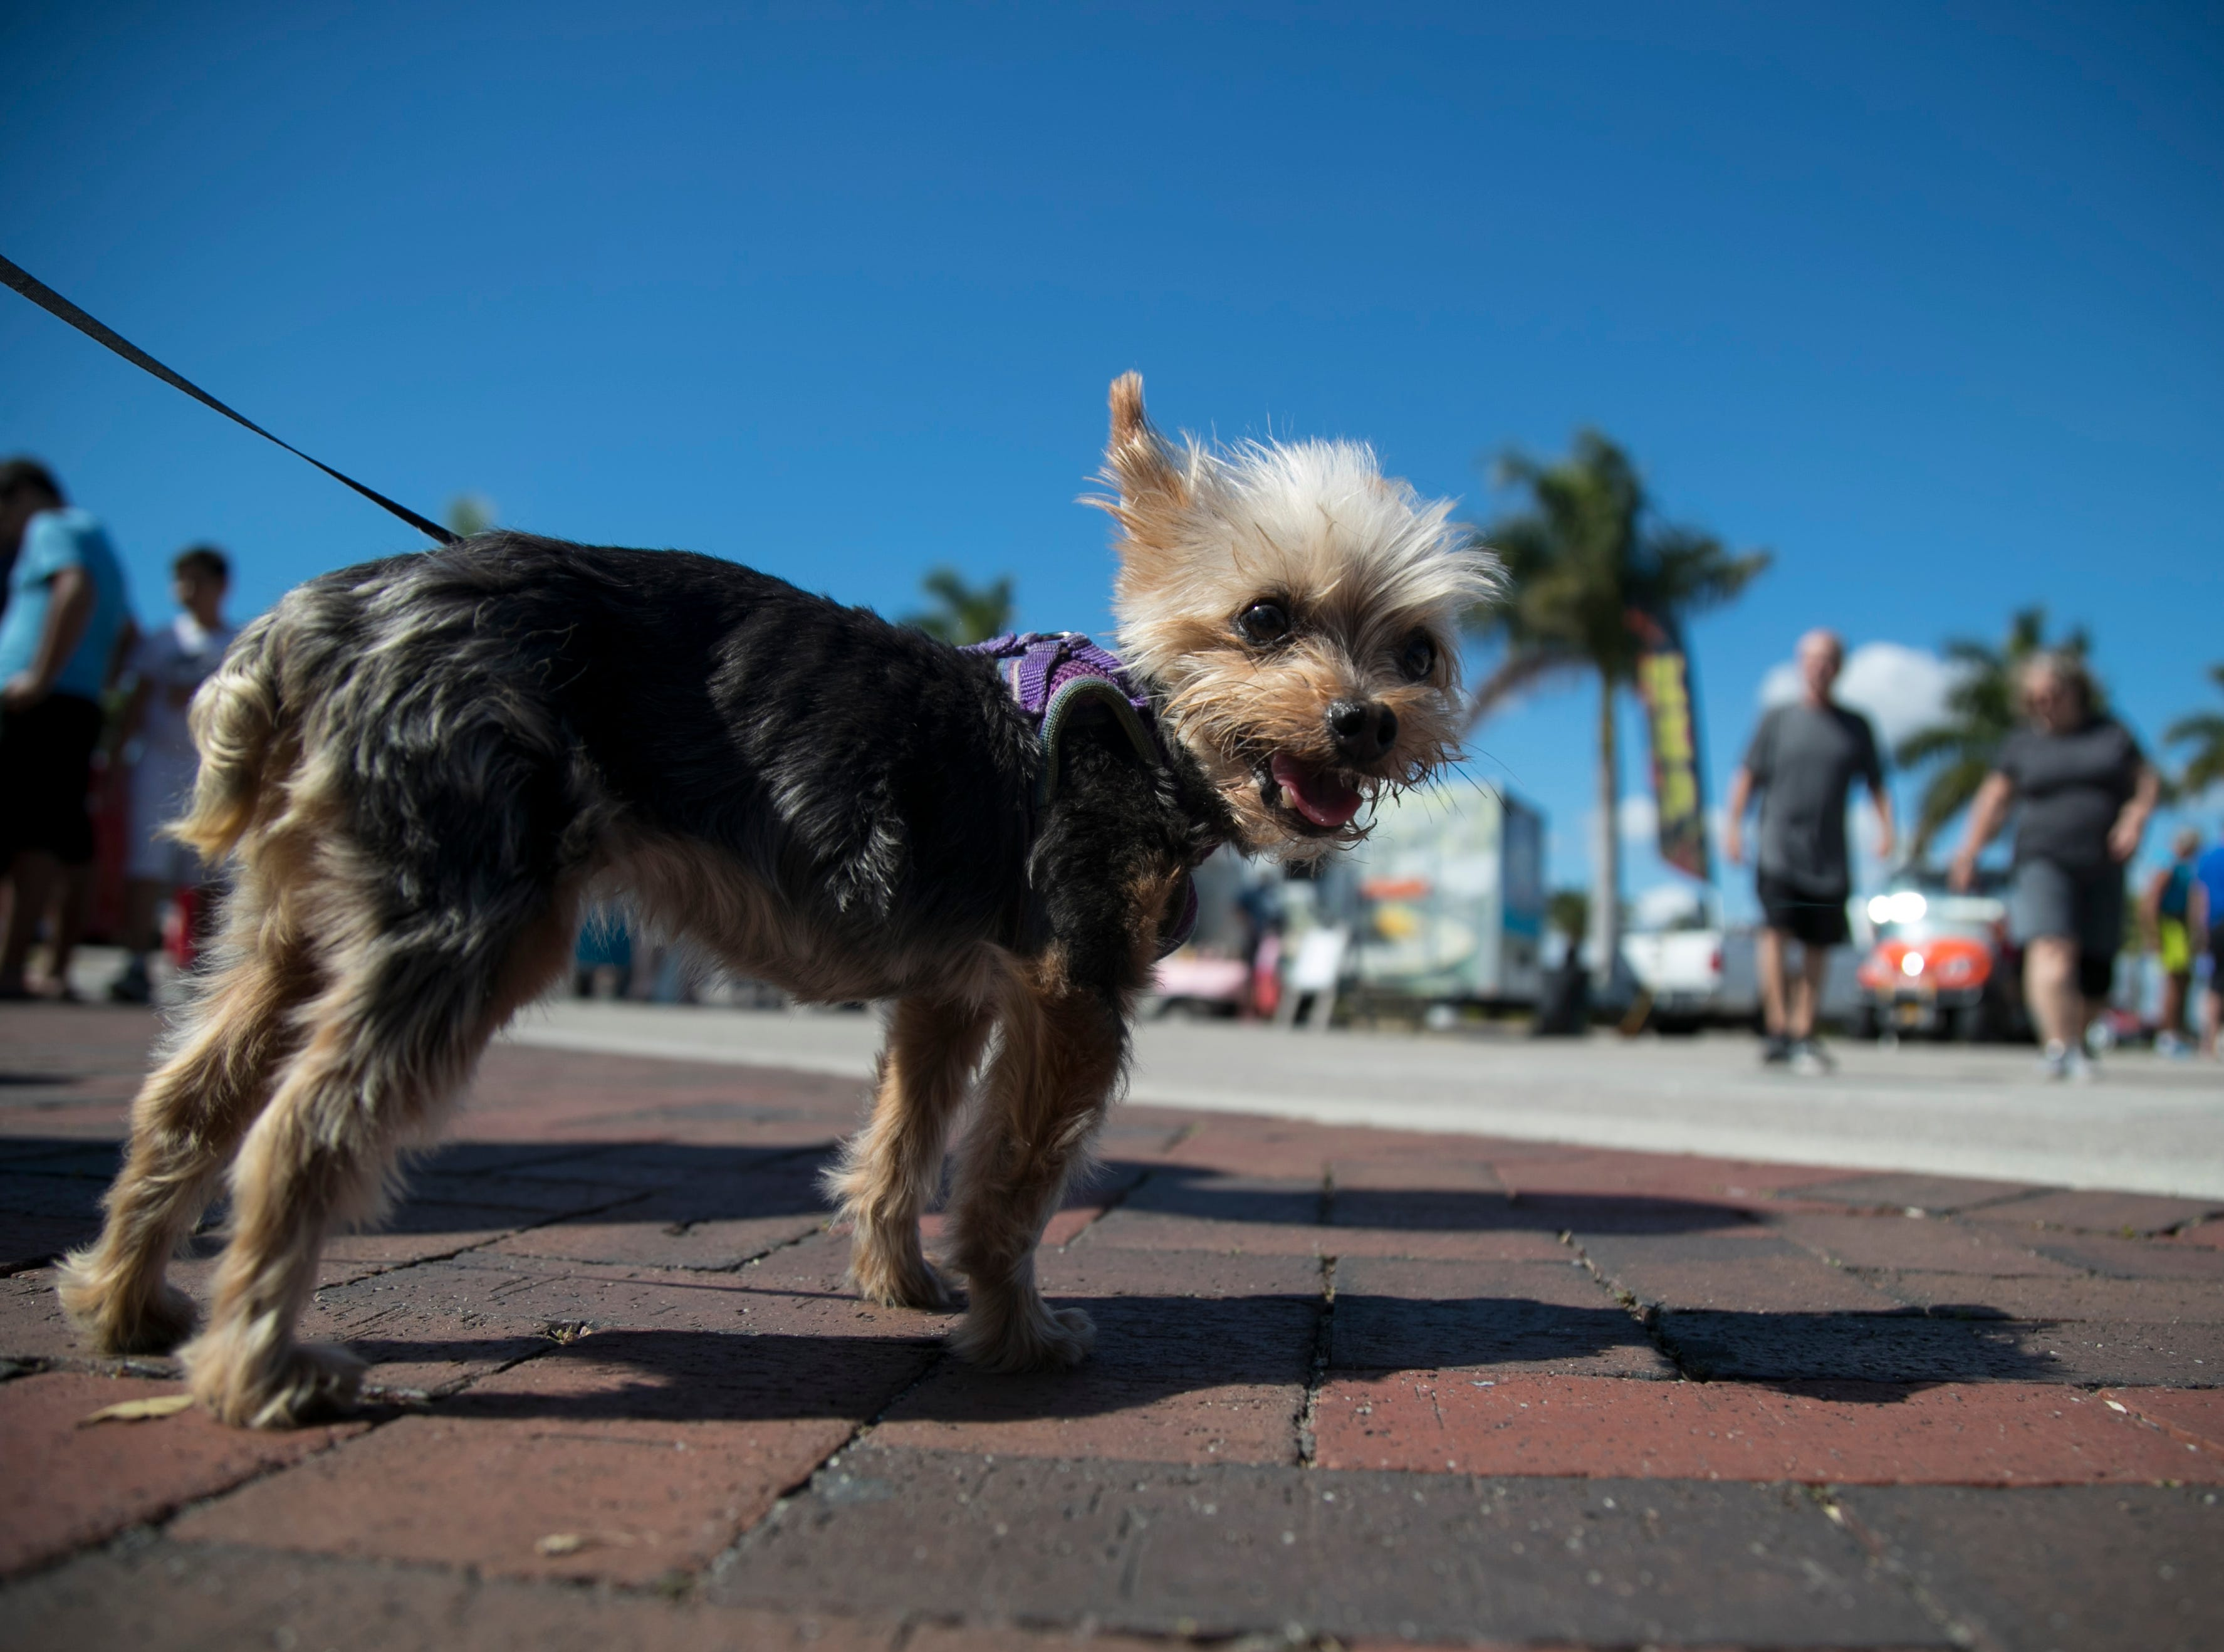 Veve, a teacup yorkshire terrier, was one of many dogs at the Mutt Strutt in downtown Fort Myers on Saturday, Feb. 9, 2019.